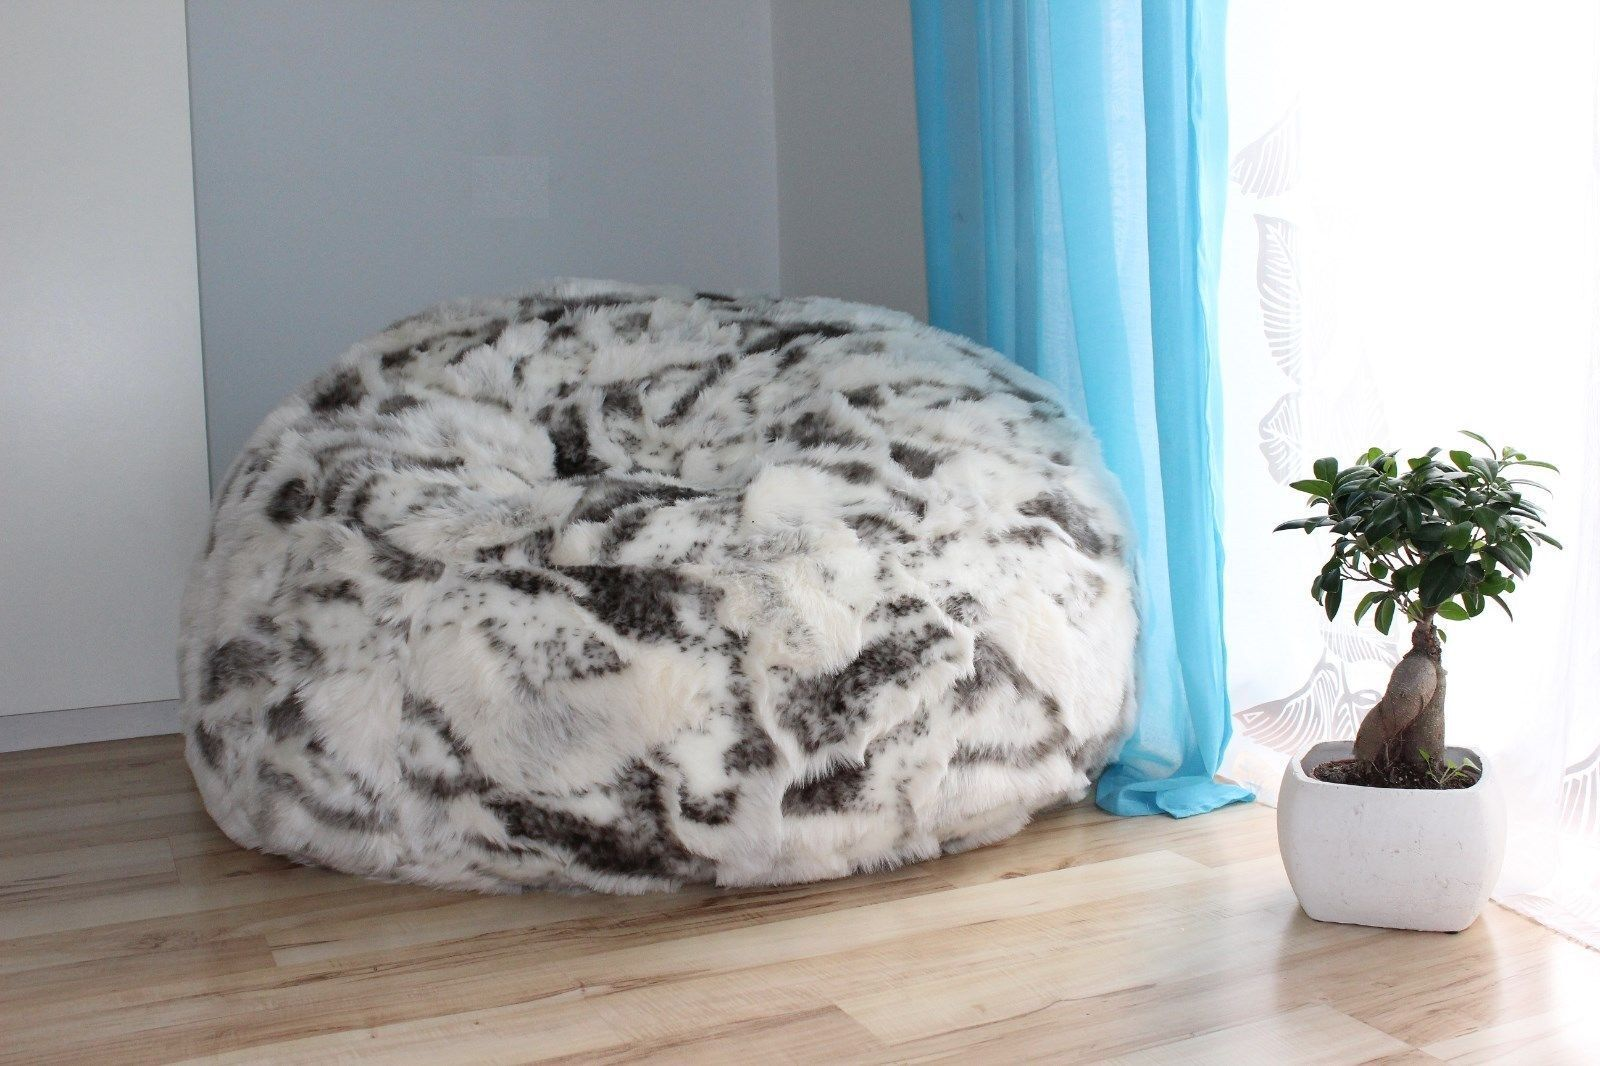 How to make bean bag chairs - How To Make A Bean Bag Chair Cover